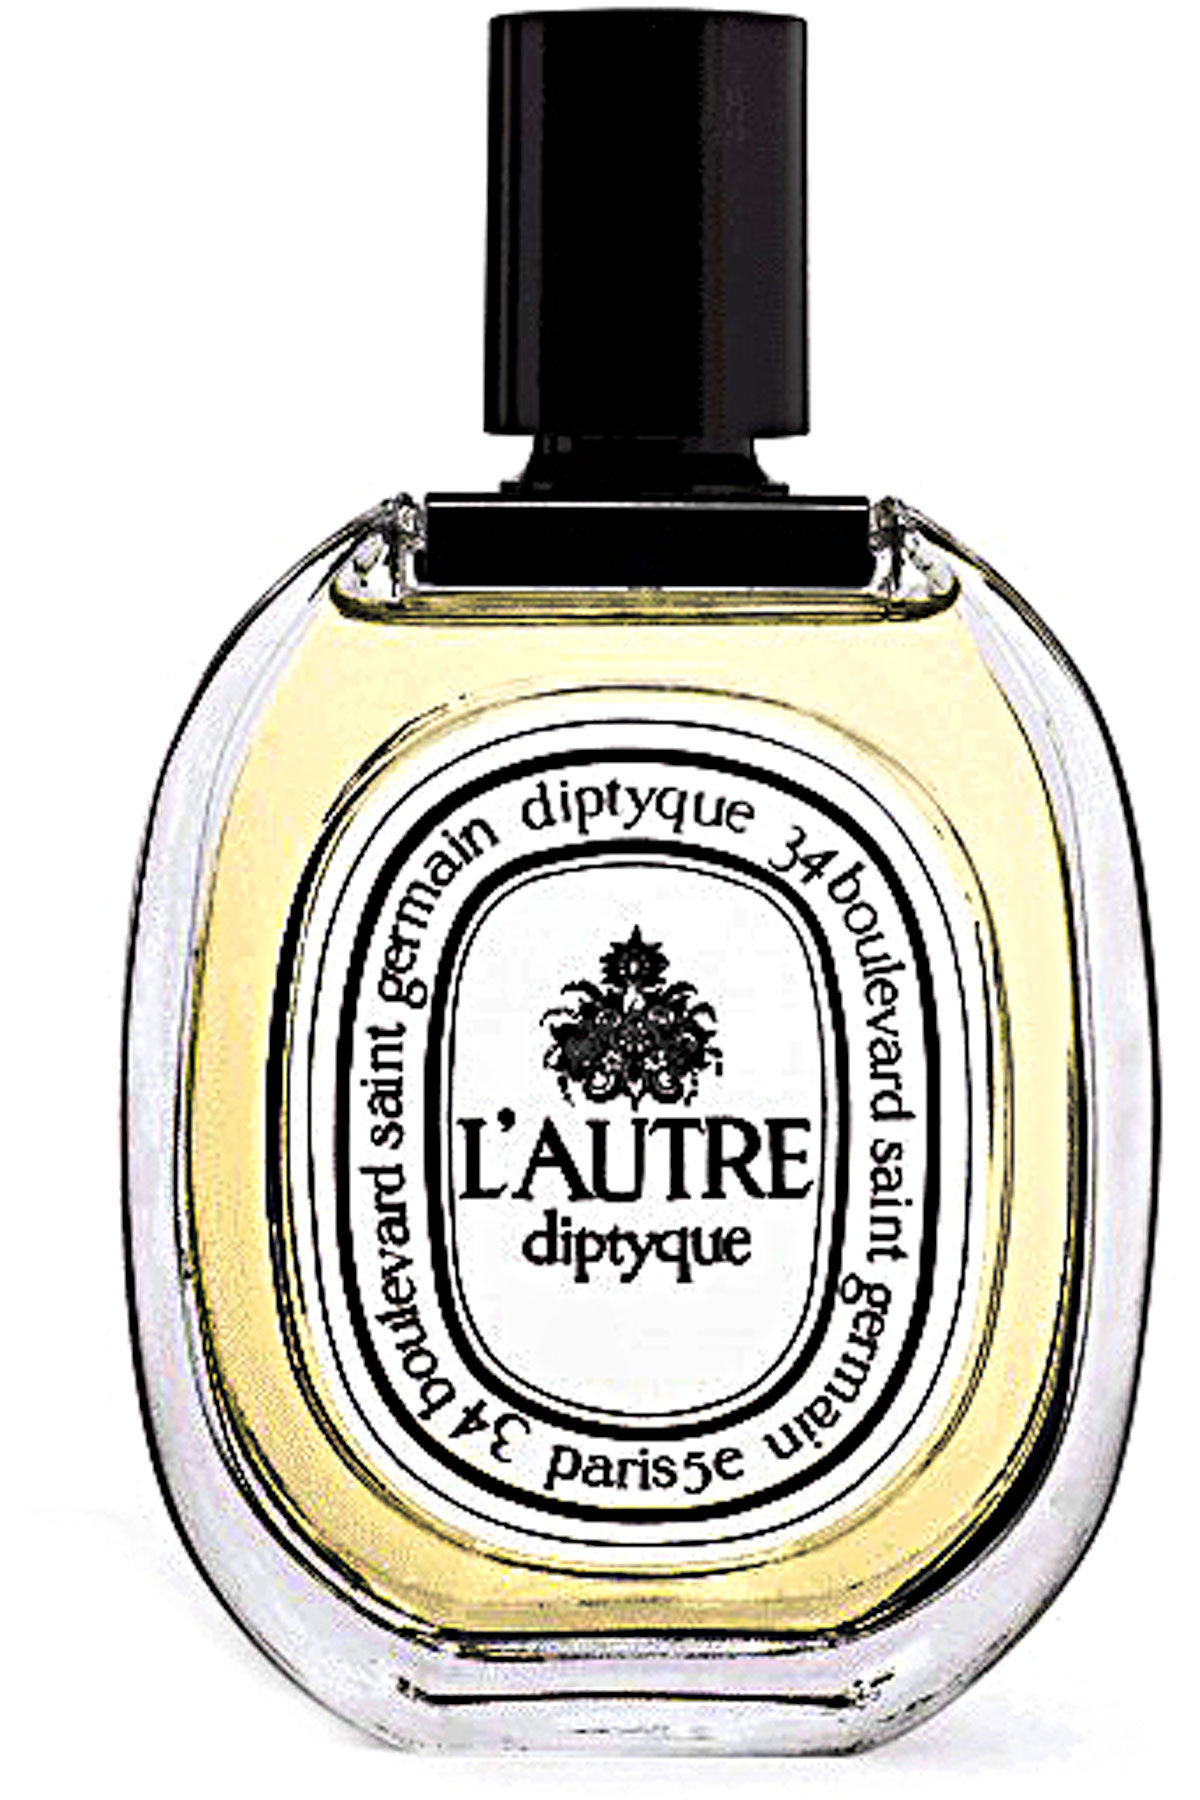 Diptyque Fragrances for Men, L Autre - Eau De Toilette - 100 Ml, 2019, 100 ml